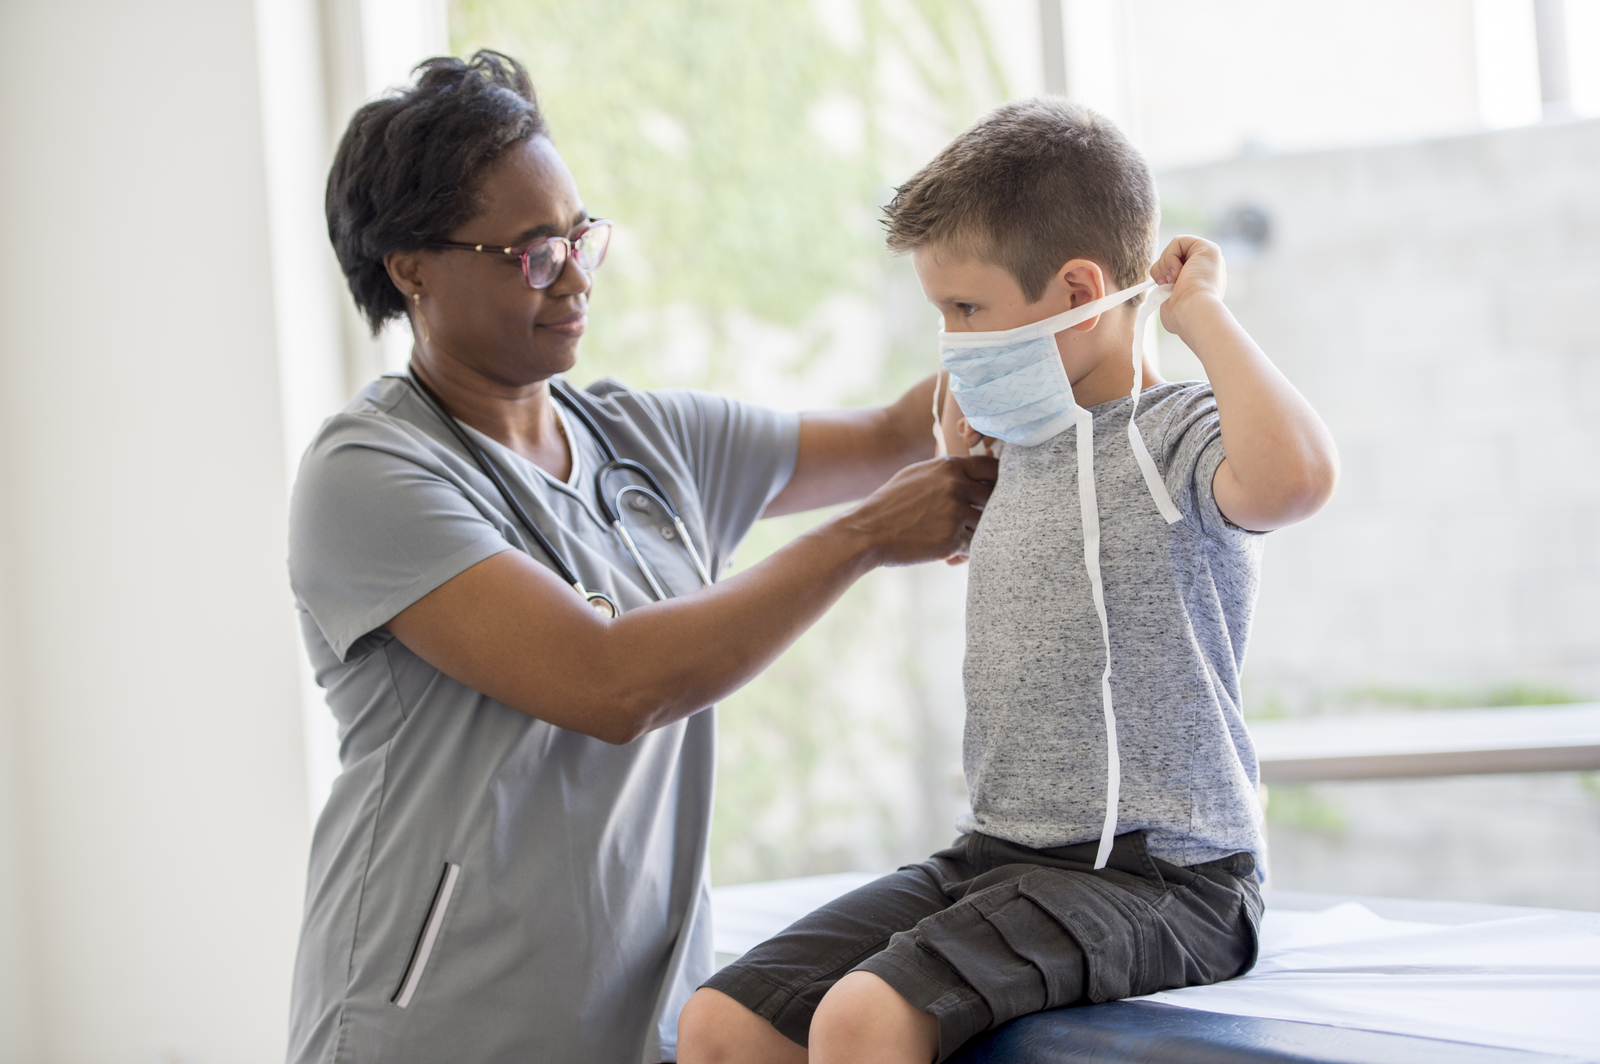 school nurse helping boy put on face mask for coronavirus